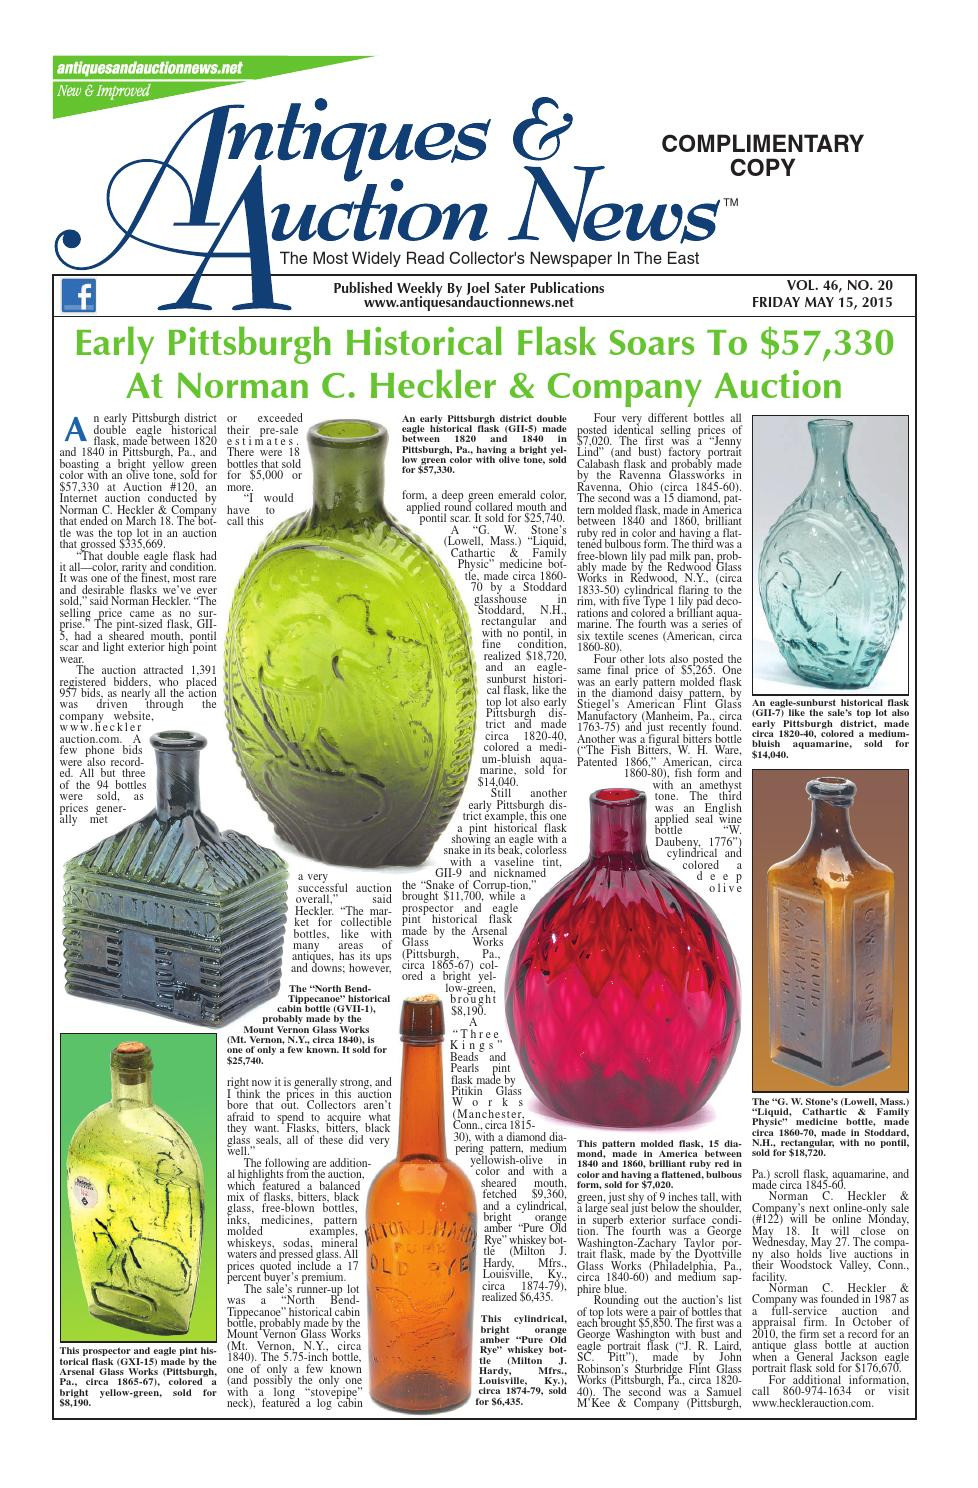 pottery barn sea glass vase filler of antiques auction news 051515 by antiques auction news issuu with regard to page 1